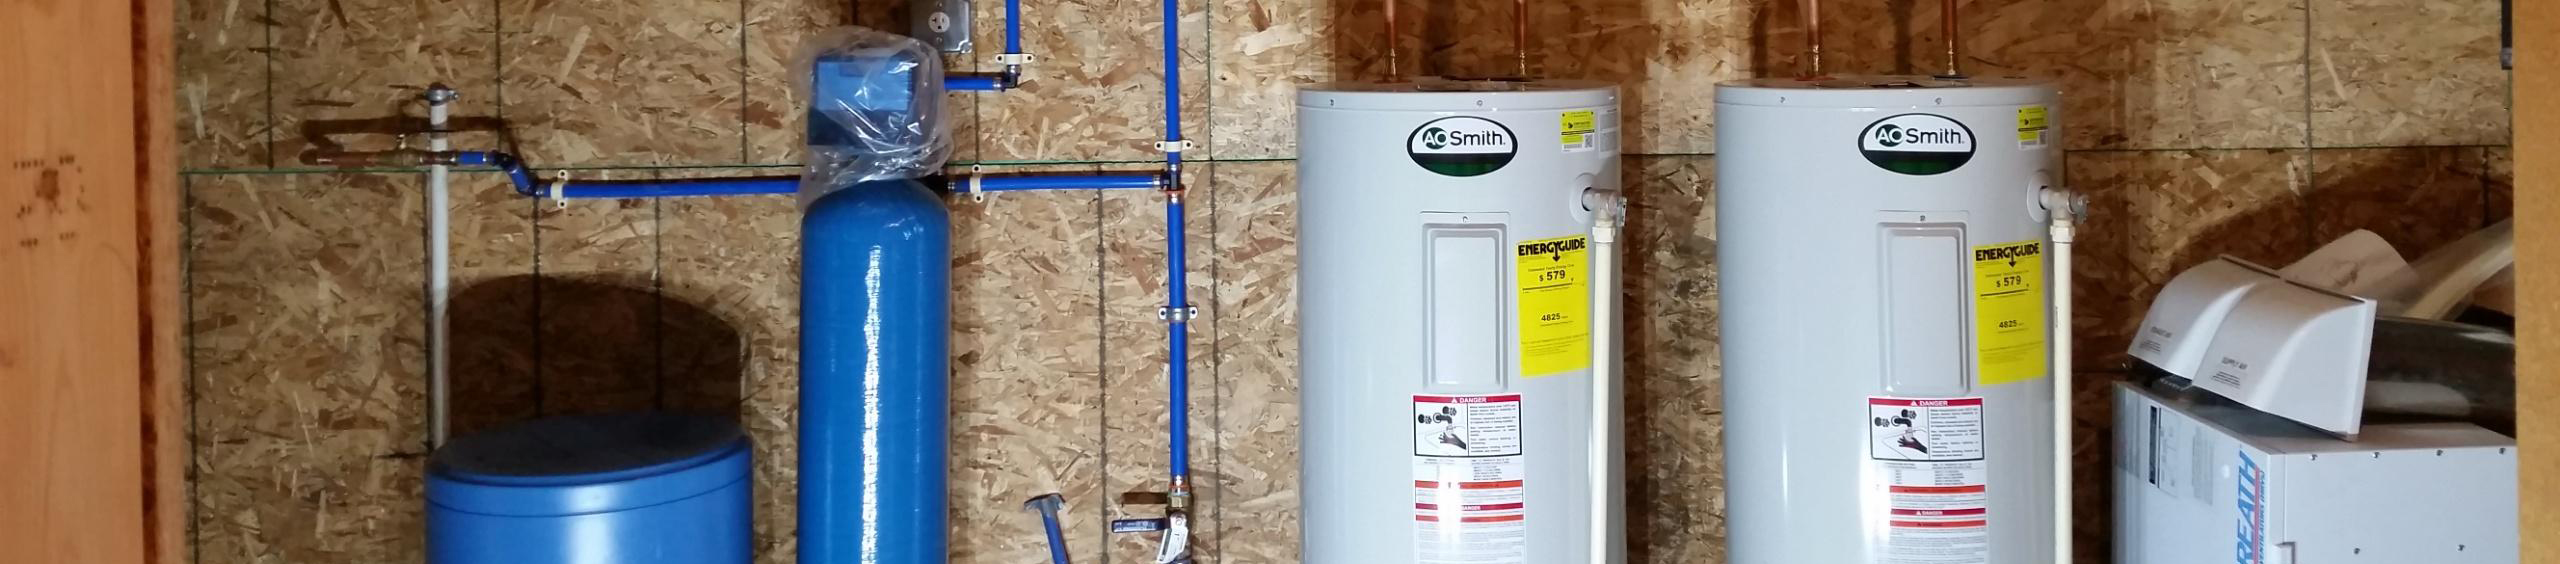 Water heaters and water softeners